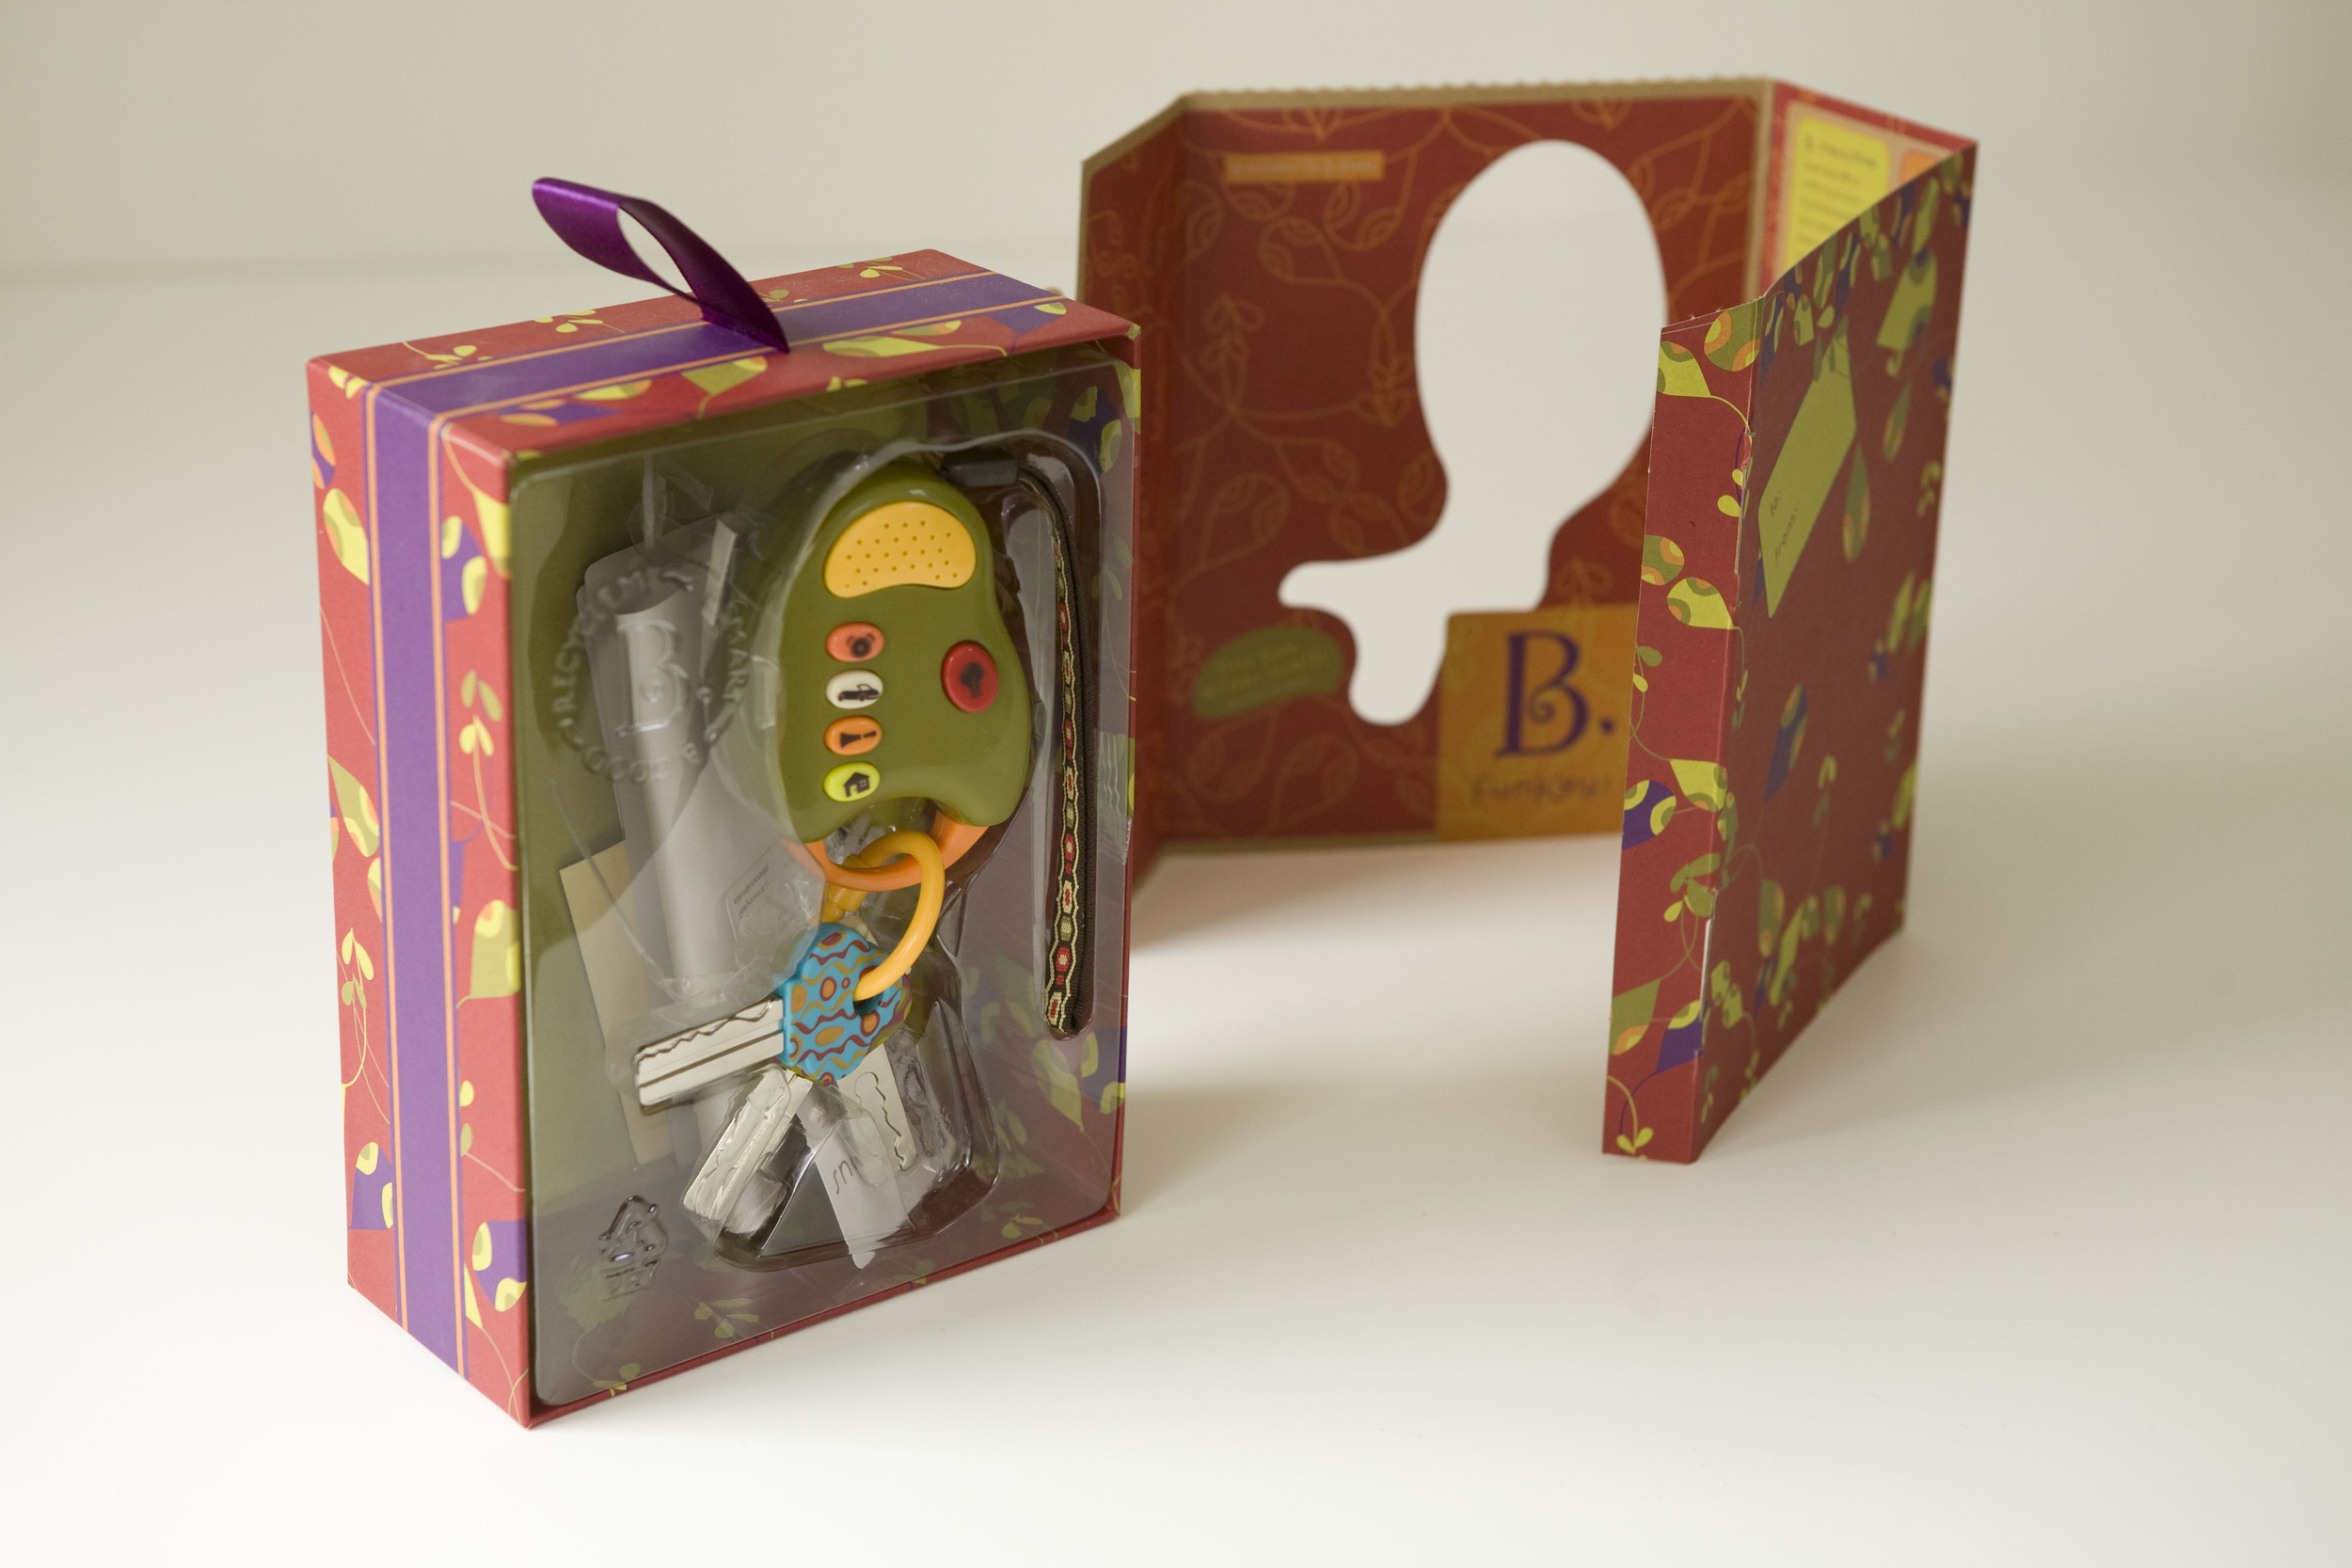 The packaging was recyclable, reusable and some even reversed to become gift wrap.